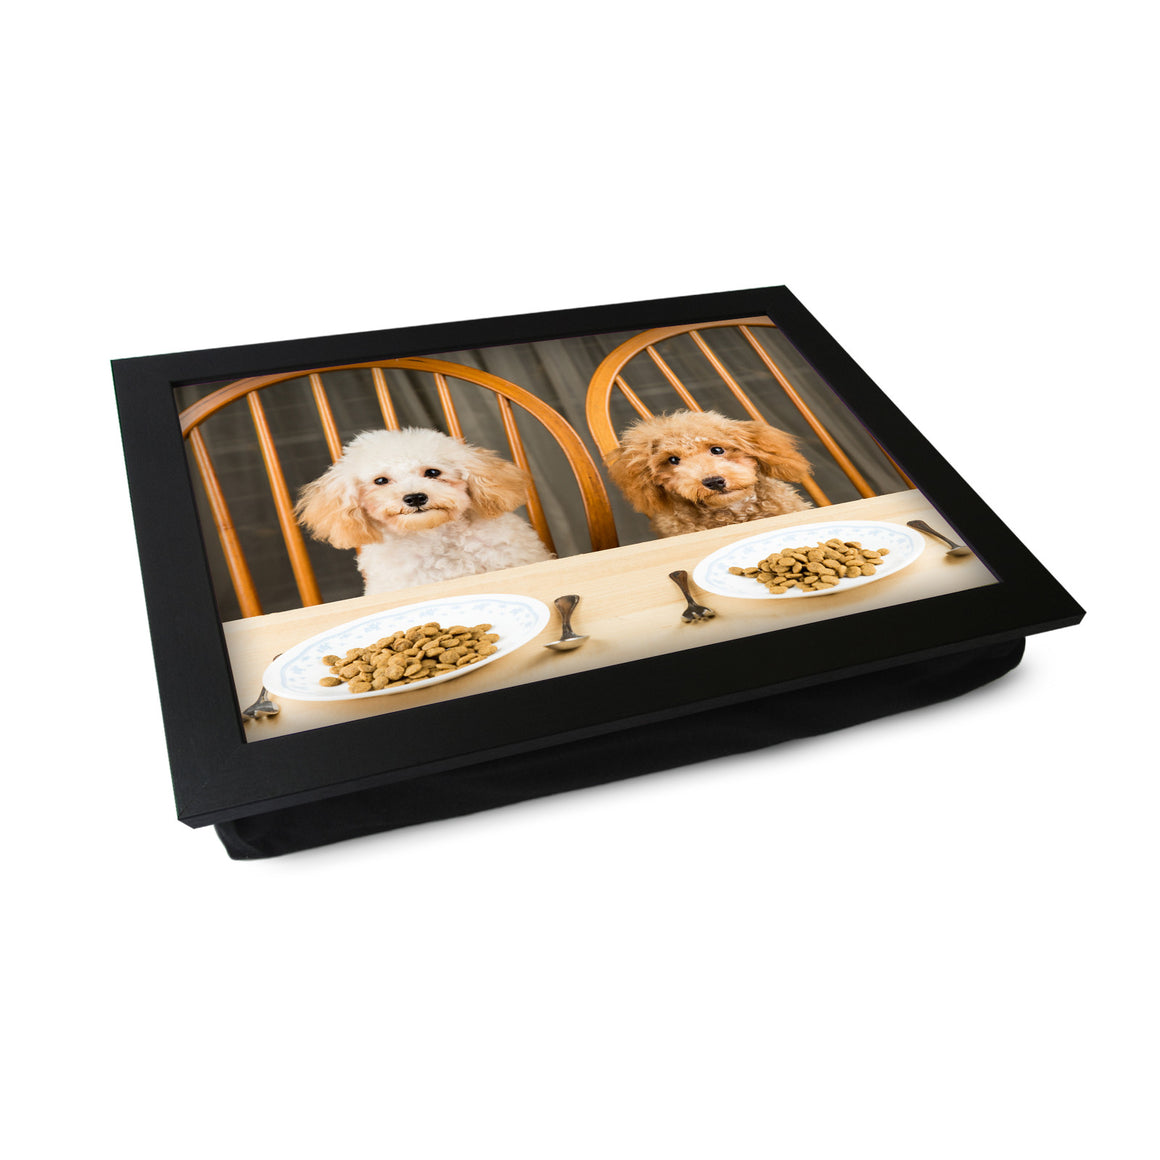 Dogs At Dinner Table Lap Tray - L0220